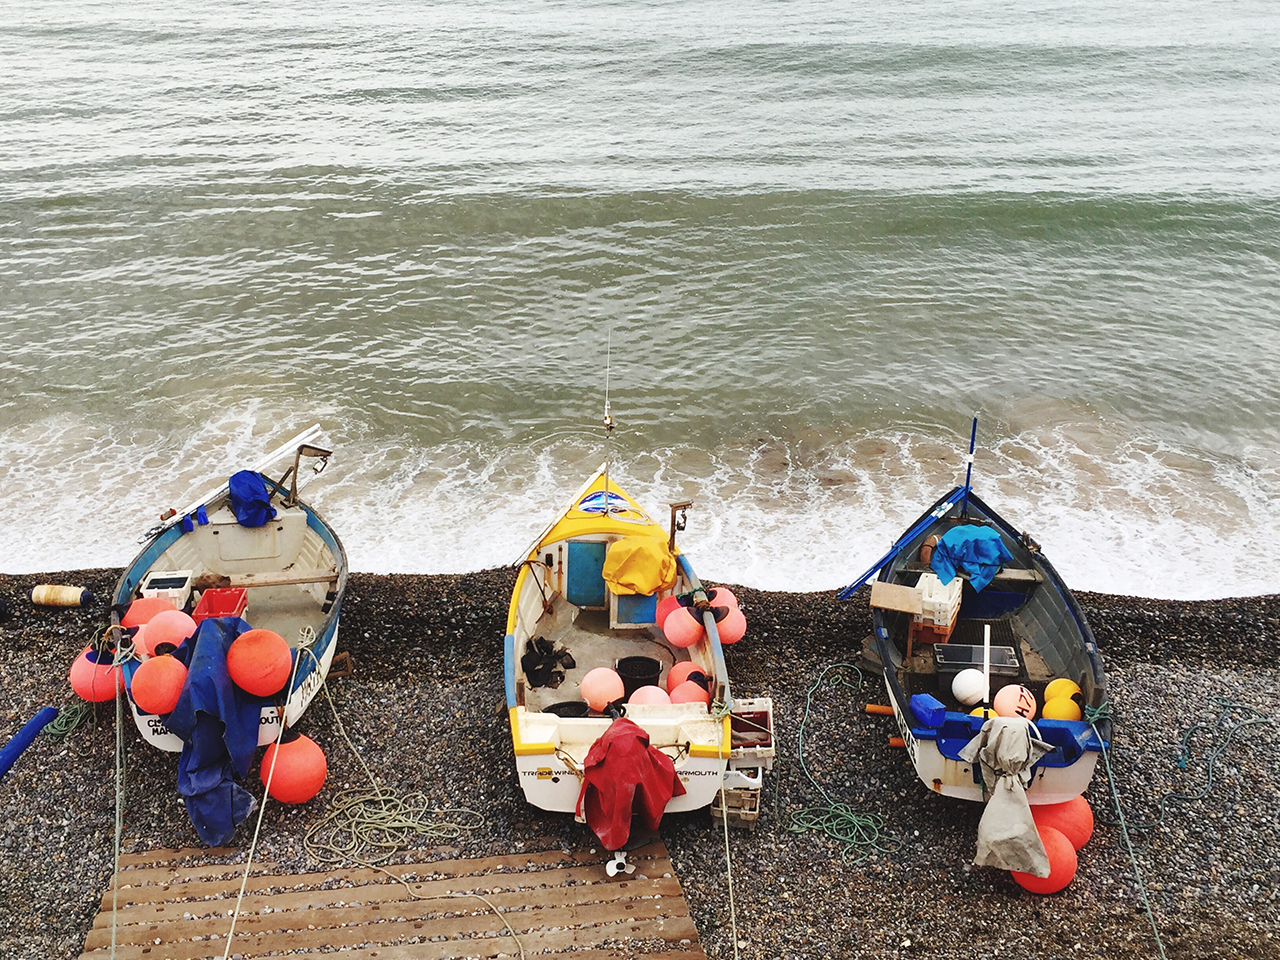 Sheringham once functioned as a fishing village